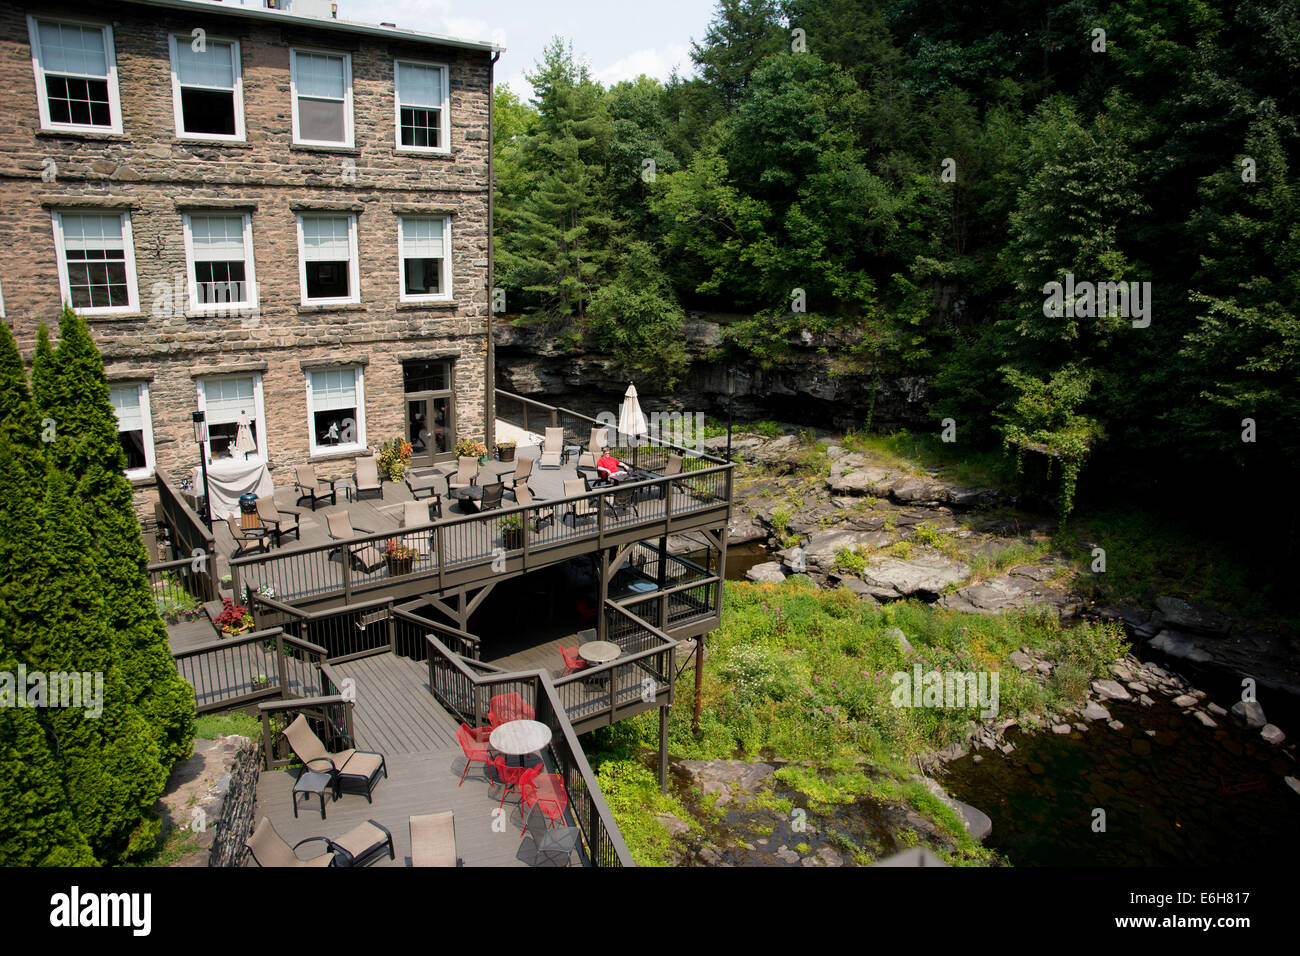 The ledges hotel in the poconos hawley pennsylvania is a luxury historic hotel